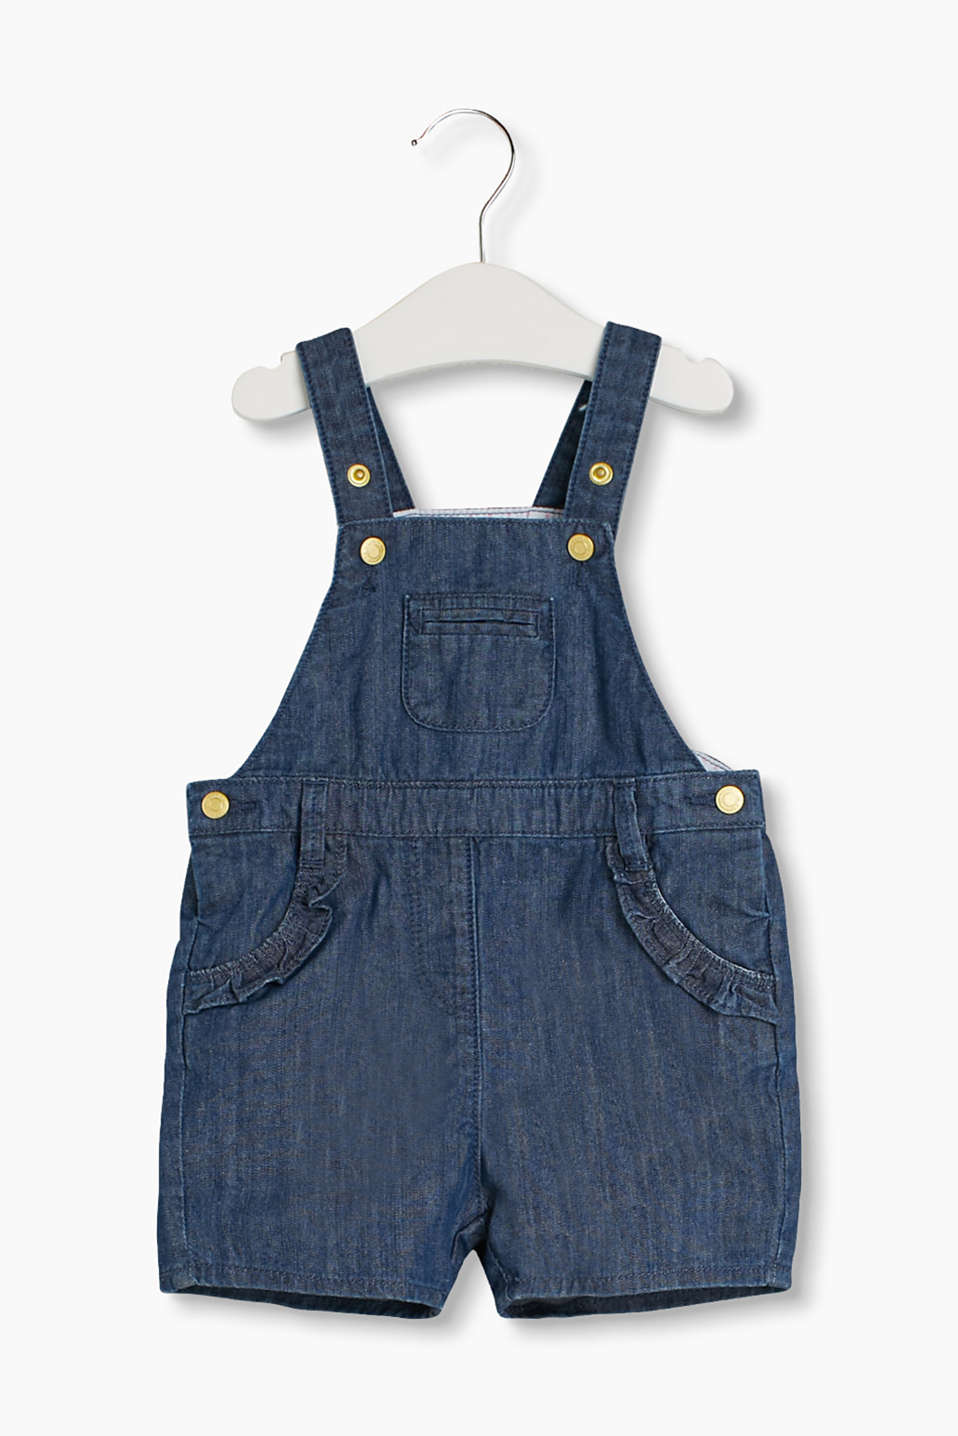 Short denim dungarees with sweet frilly details and a practical adjustable waistband